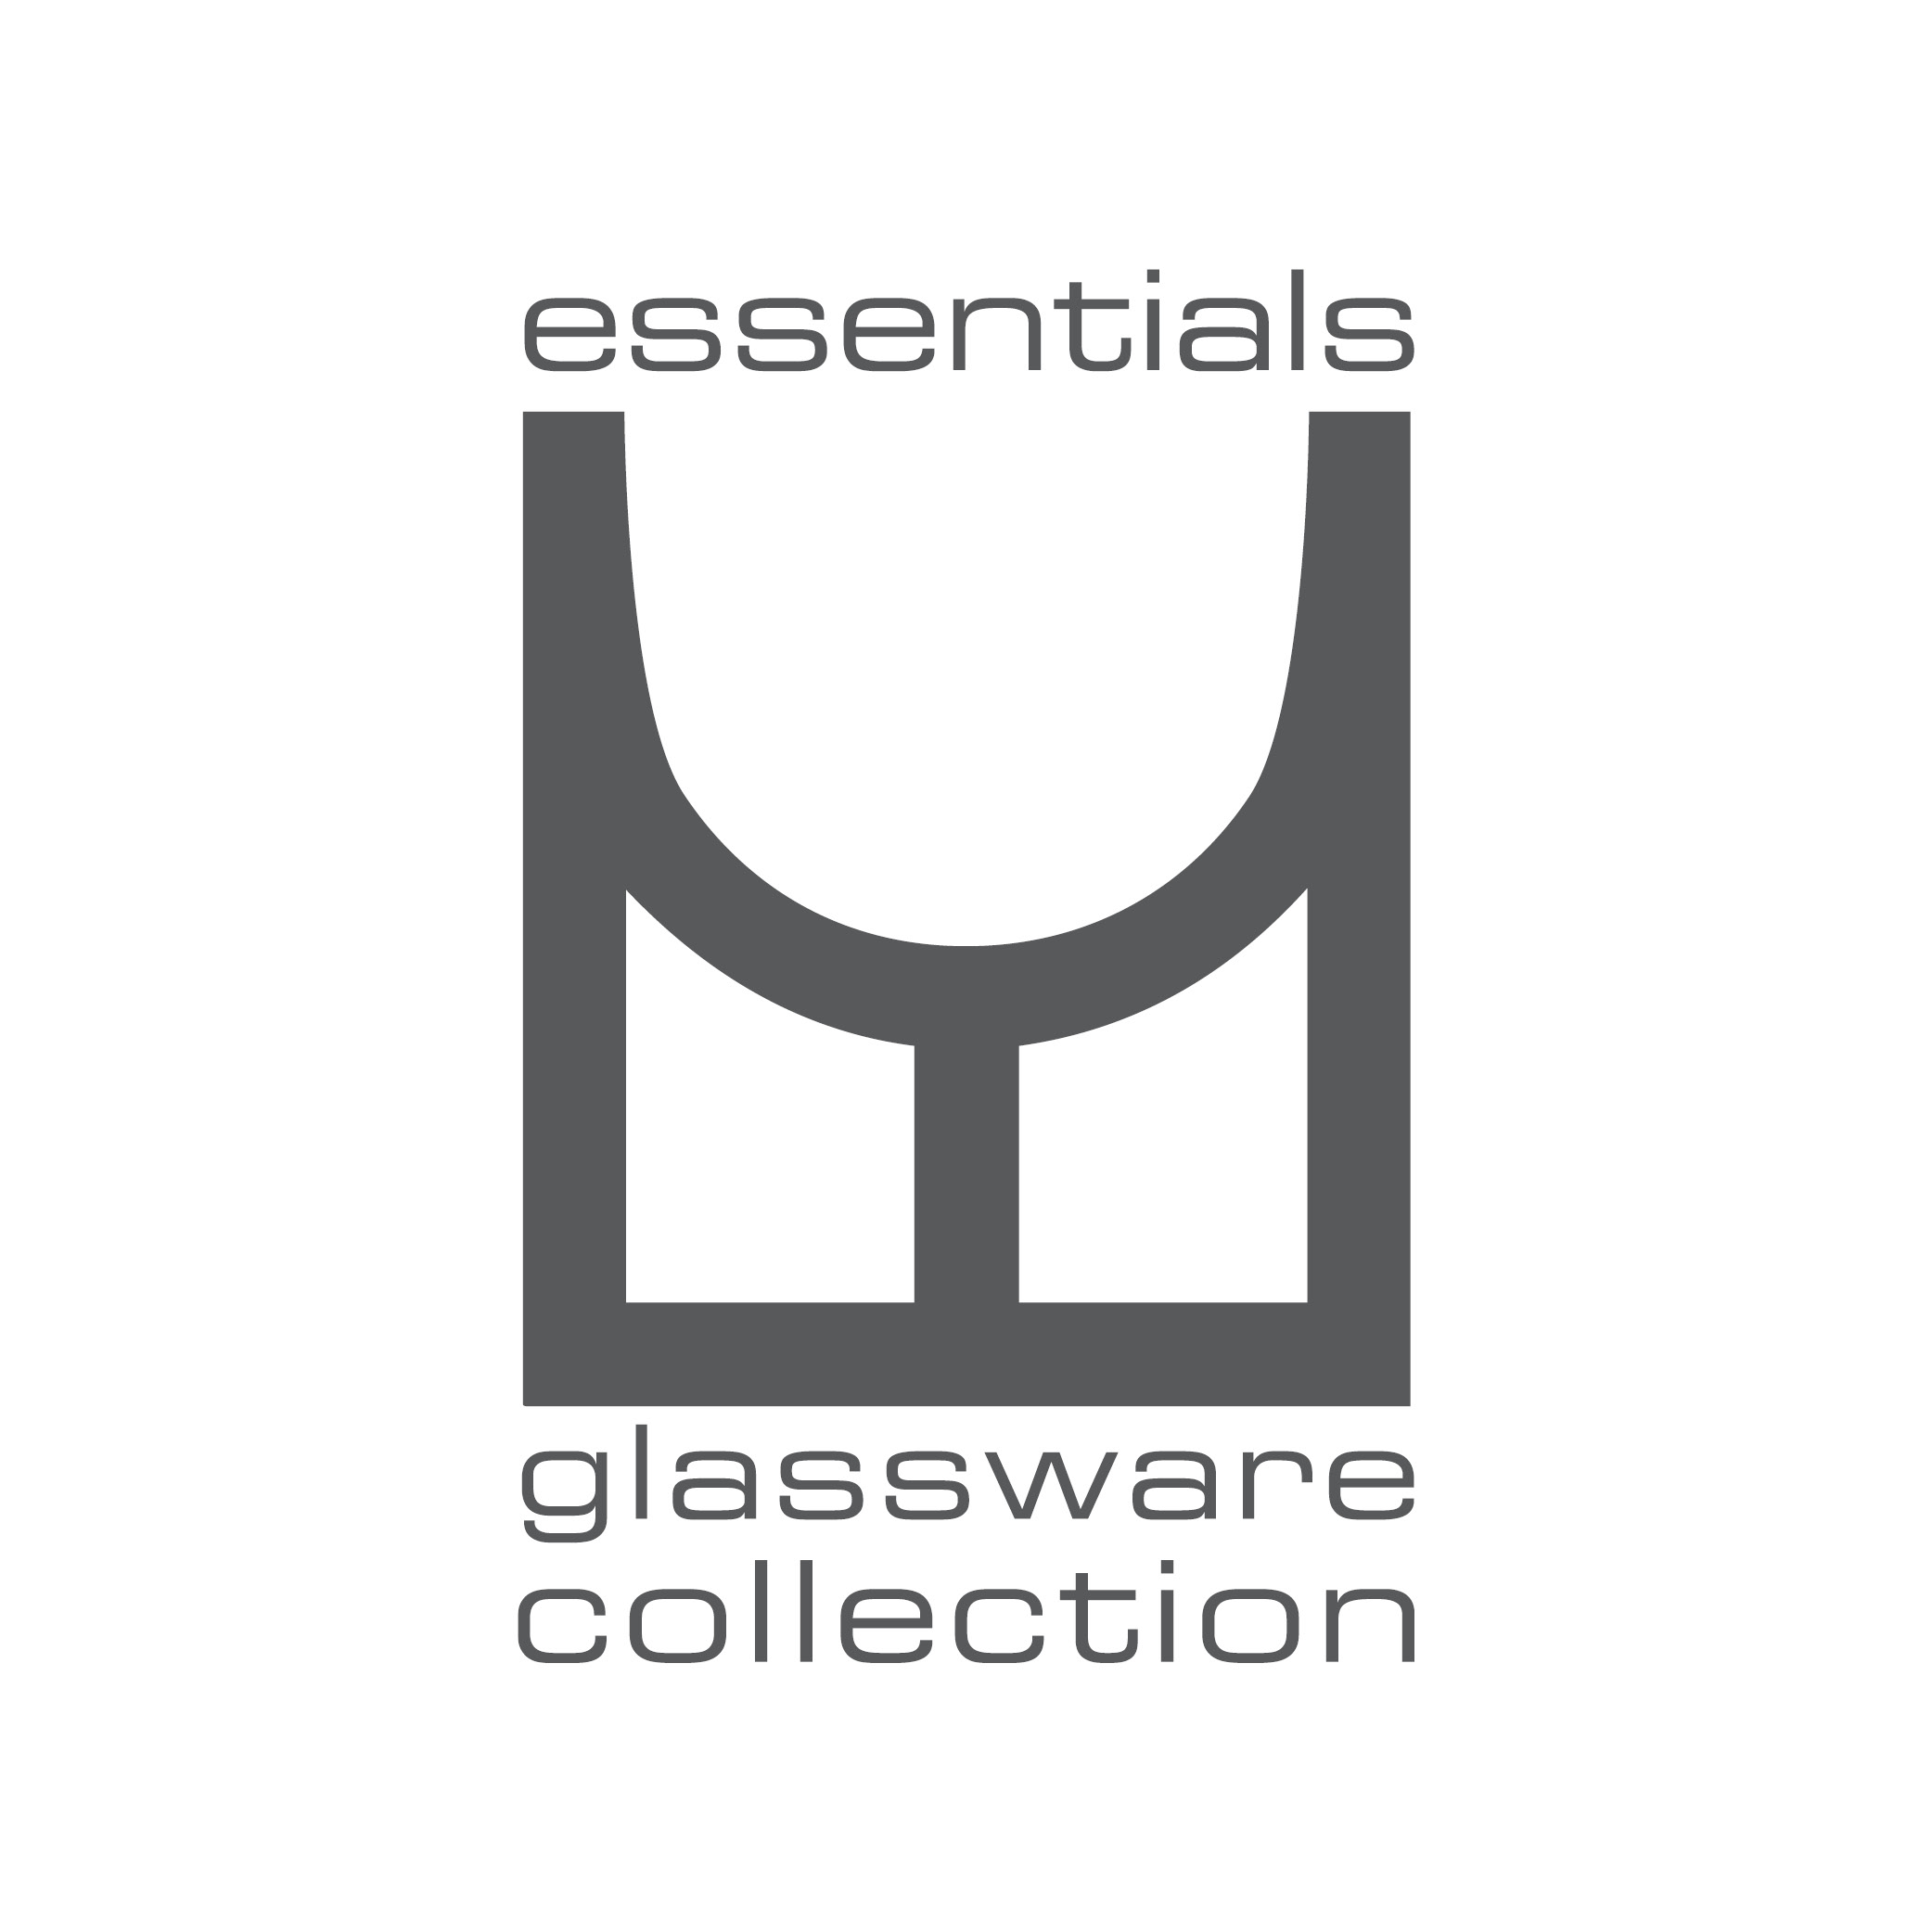 Essentials Glassware Collection